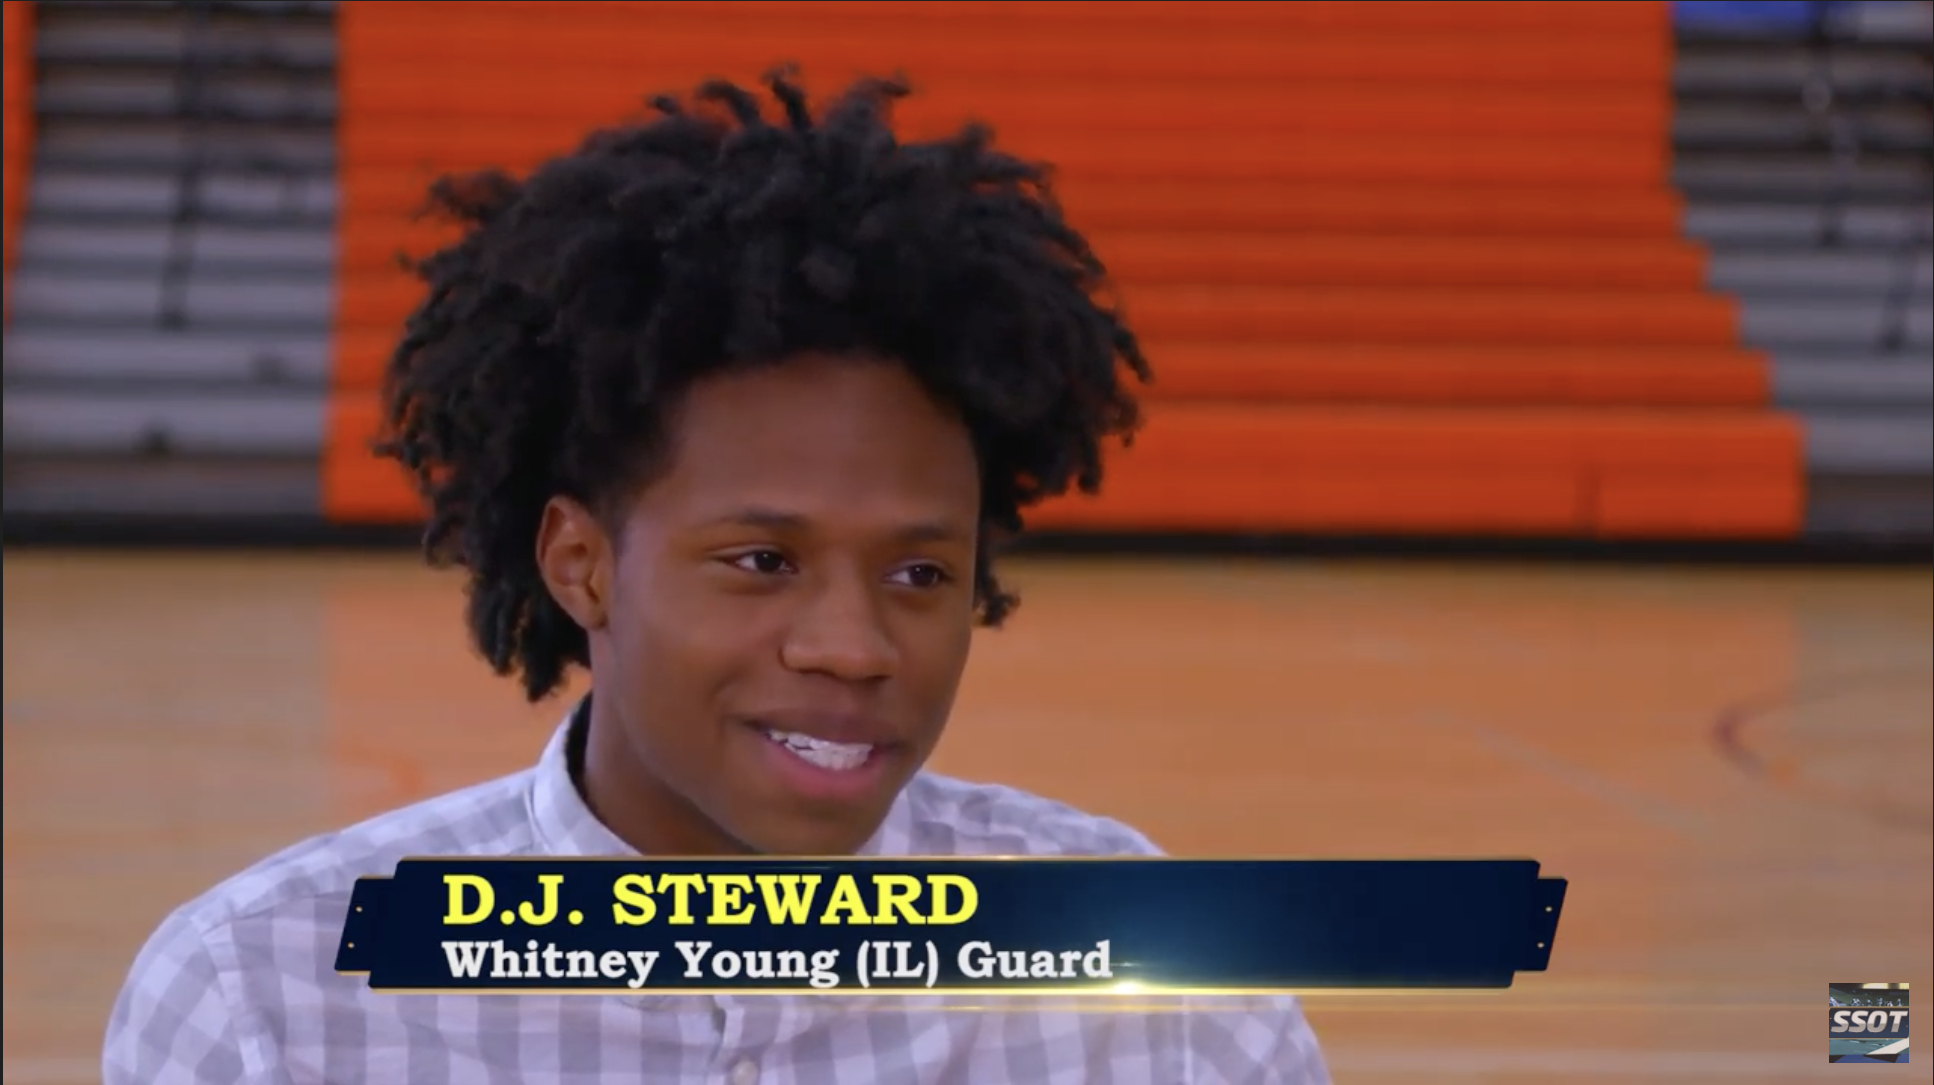 Congrats to DJ Steward ( @swipasnipa ) for being named to the 2020 AP All-State Boys Basketball Team Class 4A First Team